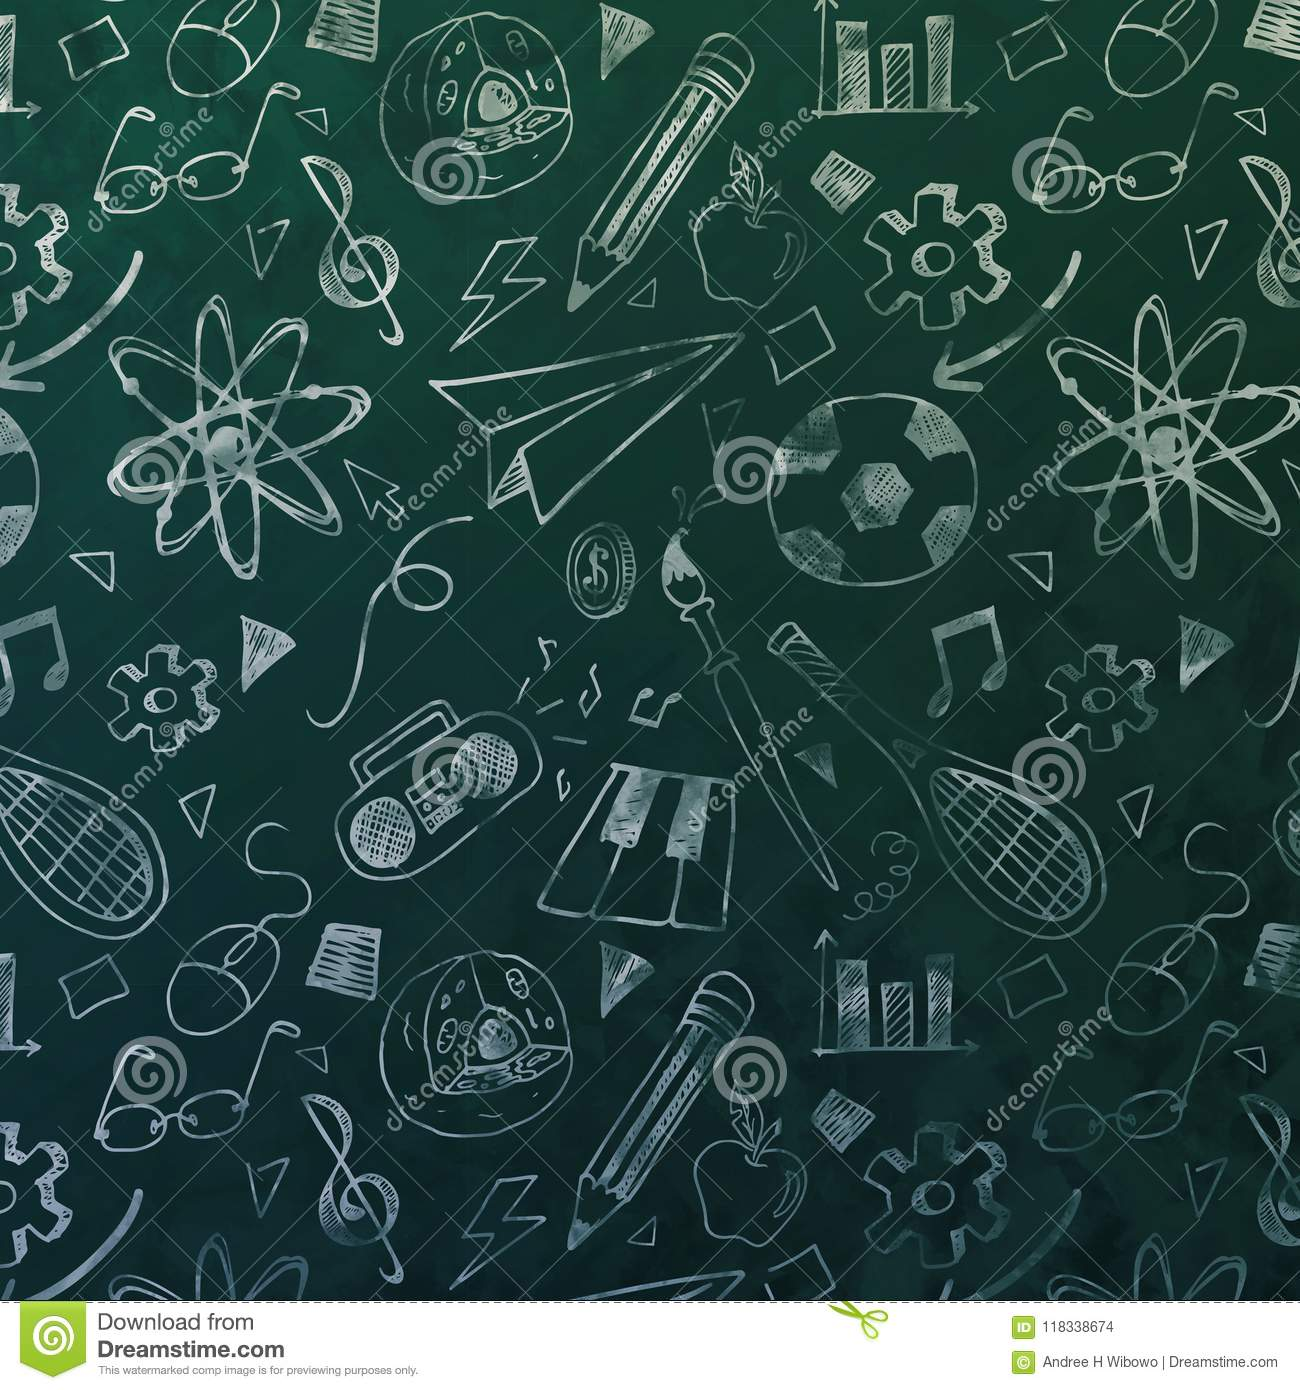 Blackboard with Chalk Drawing Patterns